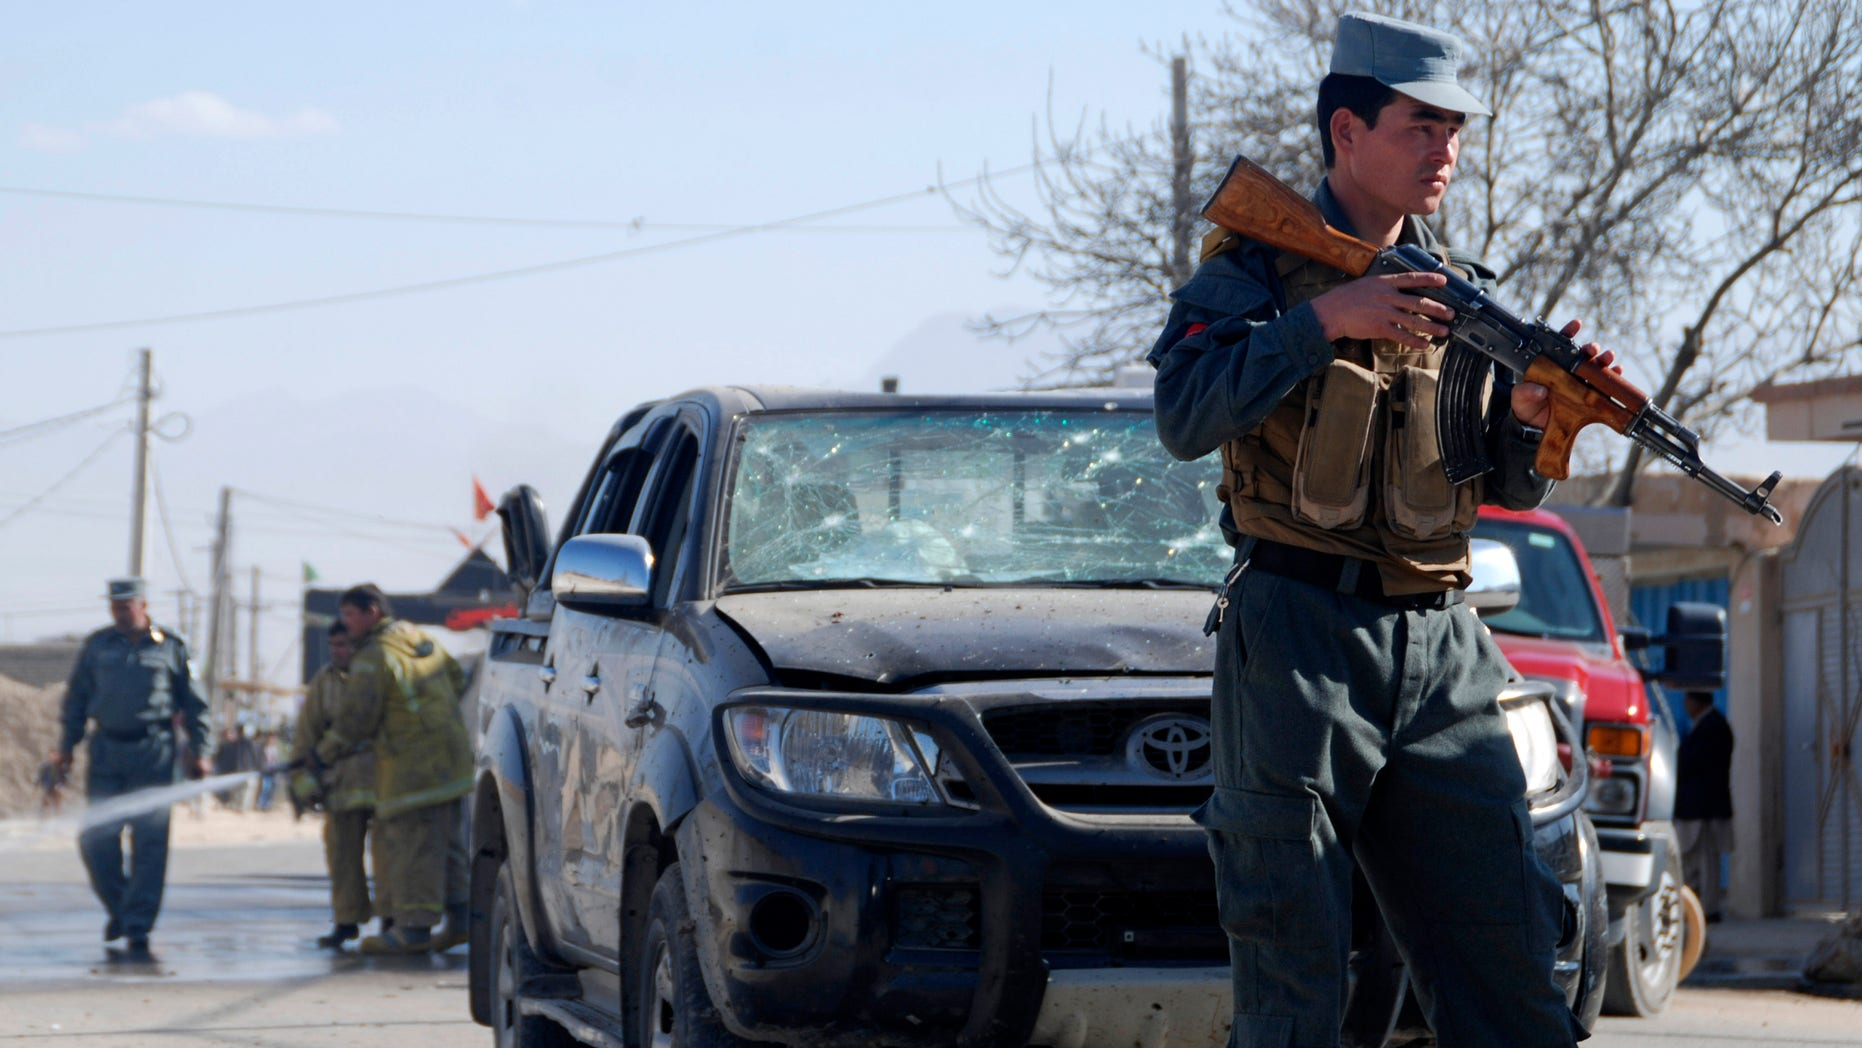 An Afghan policeman secures the area where a suicide bomber attacked the deputy governor of Balkh province in Mazar-e-Sharif, northern Afghanistan, Sunday, Nov. 17, 2013.  While the official escaped unhurt, at least one civilian was killed, said Balkh police spokesman Sher Jan Durrani.  (AP Photo/Mustafa Najafizada)